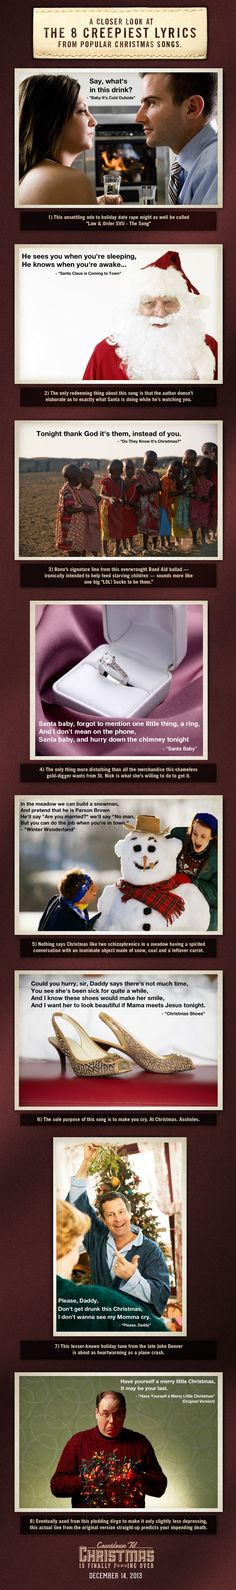 Remarkable 1000 Images About Holiday Humor On Pinterest Advent Someecards Easy Diy Christmas Decorations Tissureus